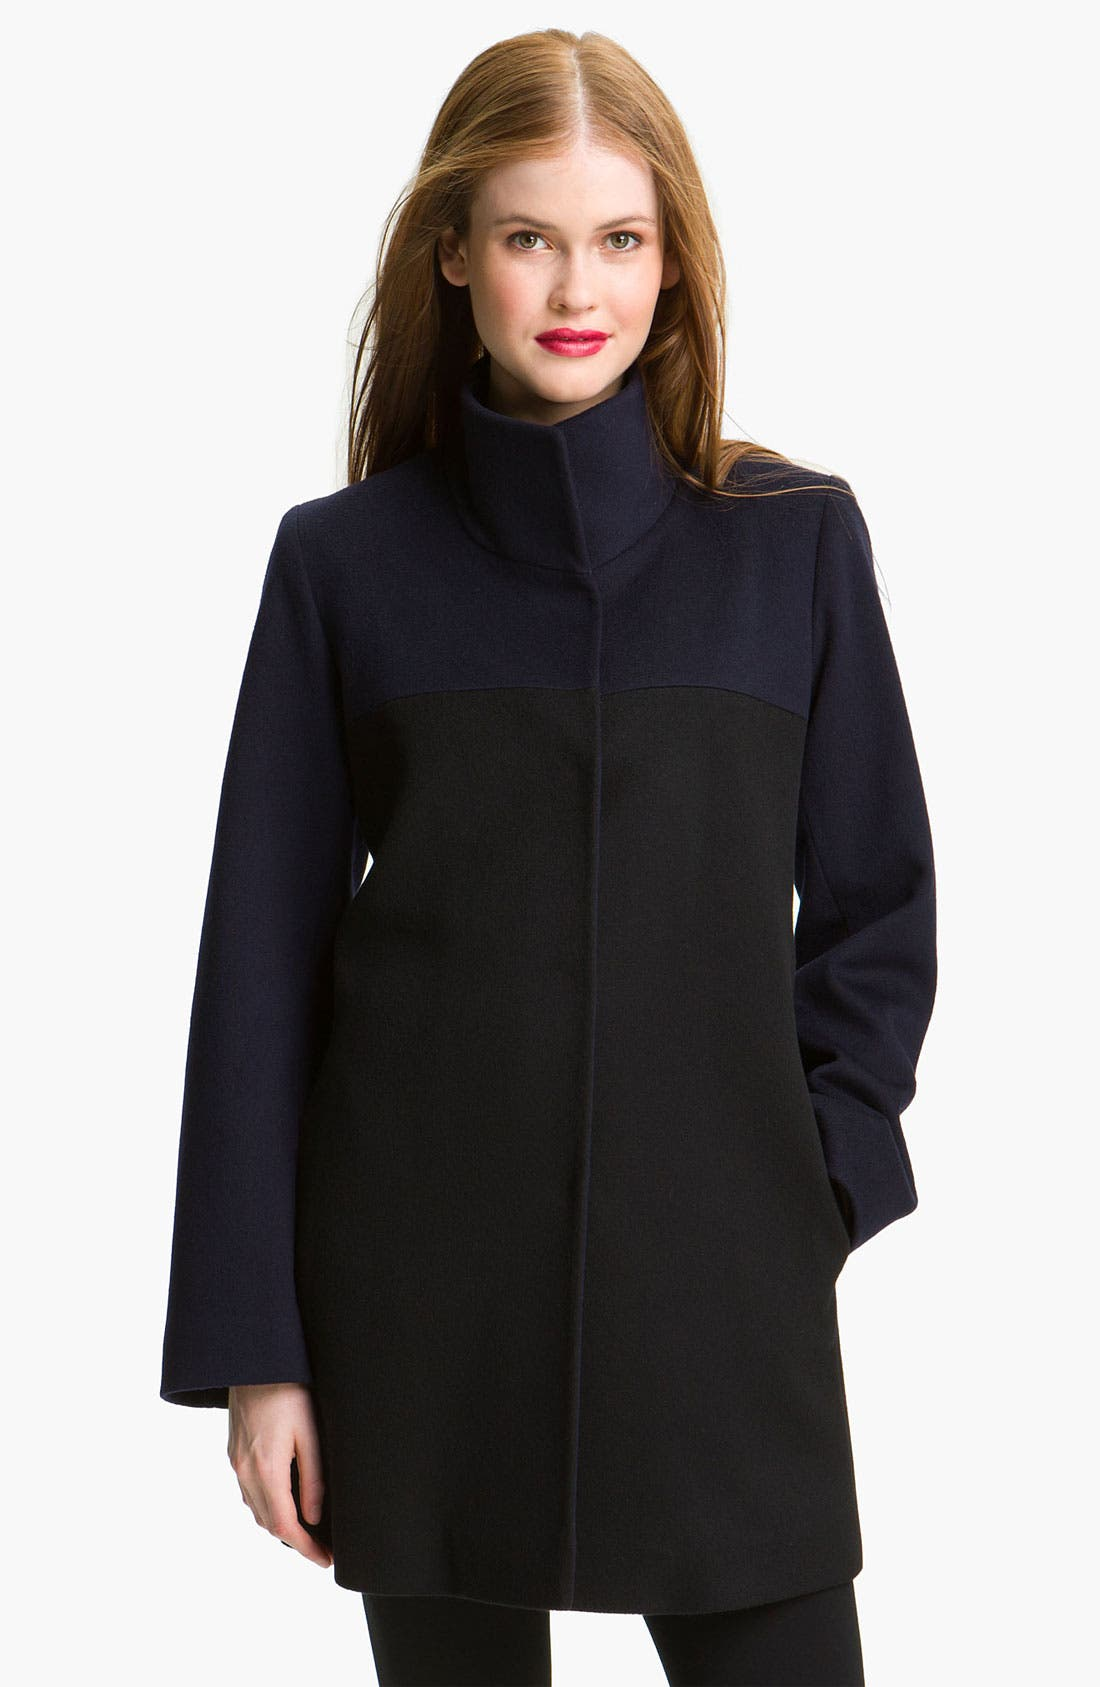 Alternate Image 1 Selected - Fleurette Two Tone Wool Coat (Online Exclusive)